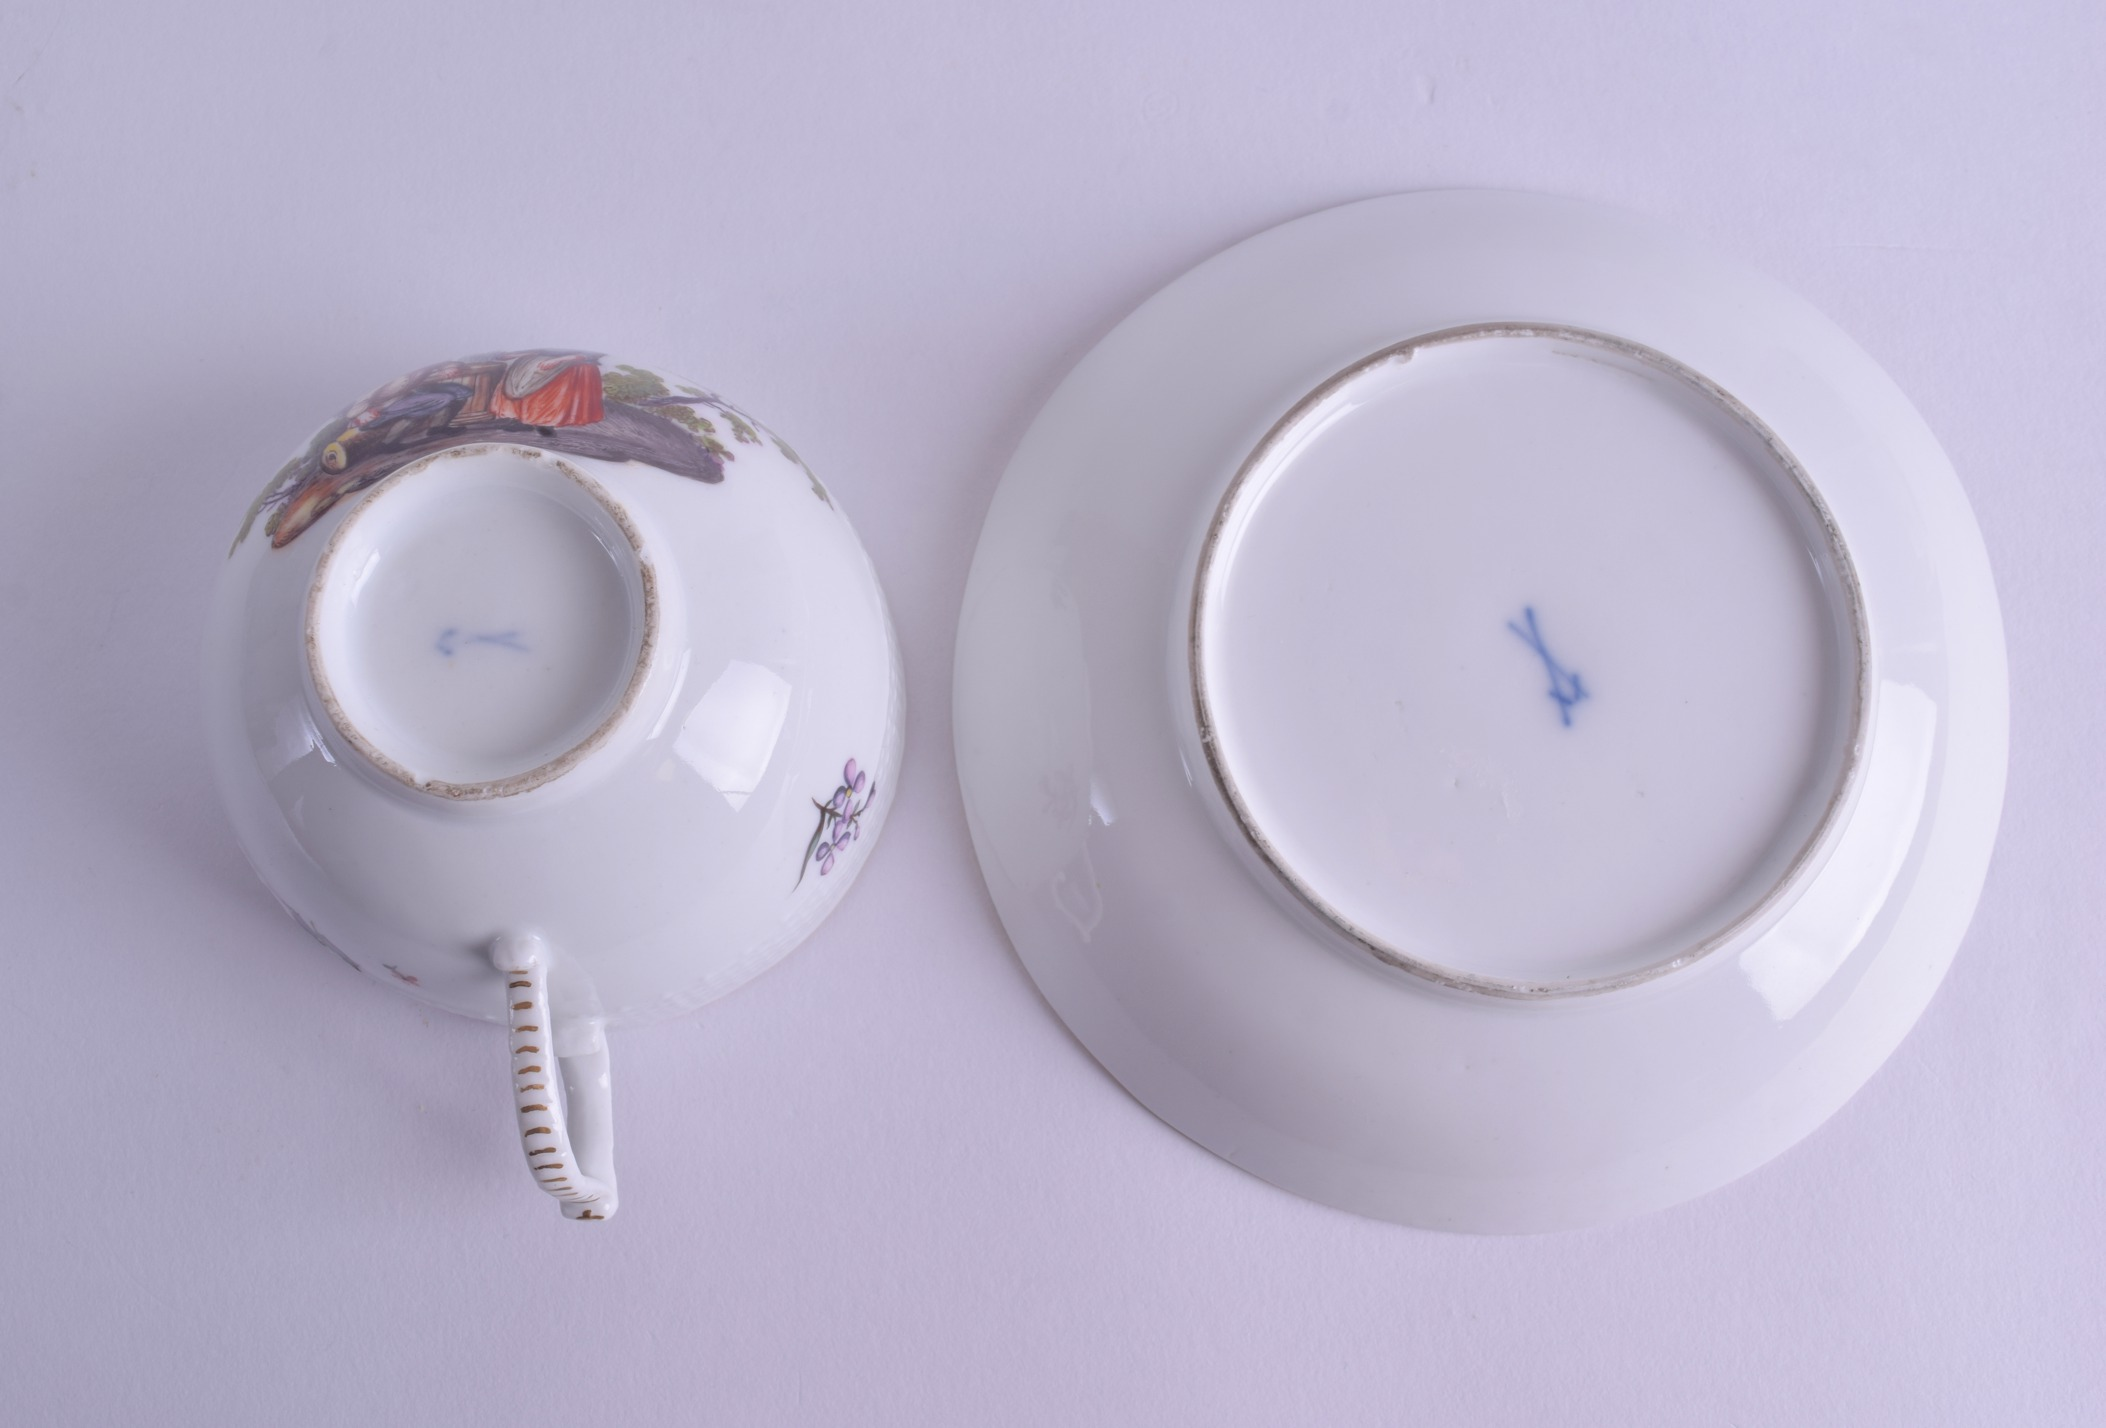 Lot 109 - AN 18TH/19TH CENTURY MEISSEN PORCELAIN TEACUP AND SAUCER painted with figures within landscapes.